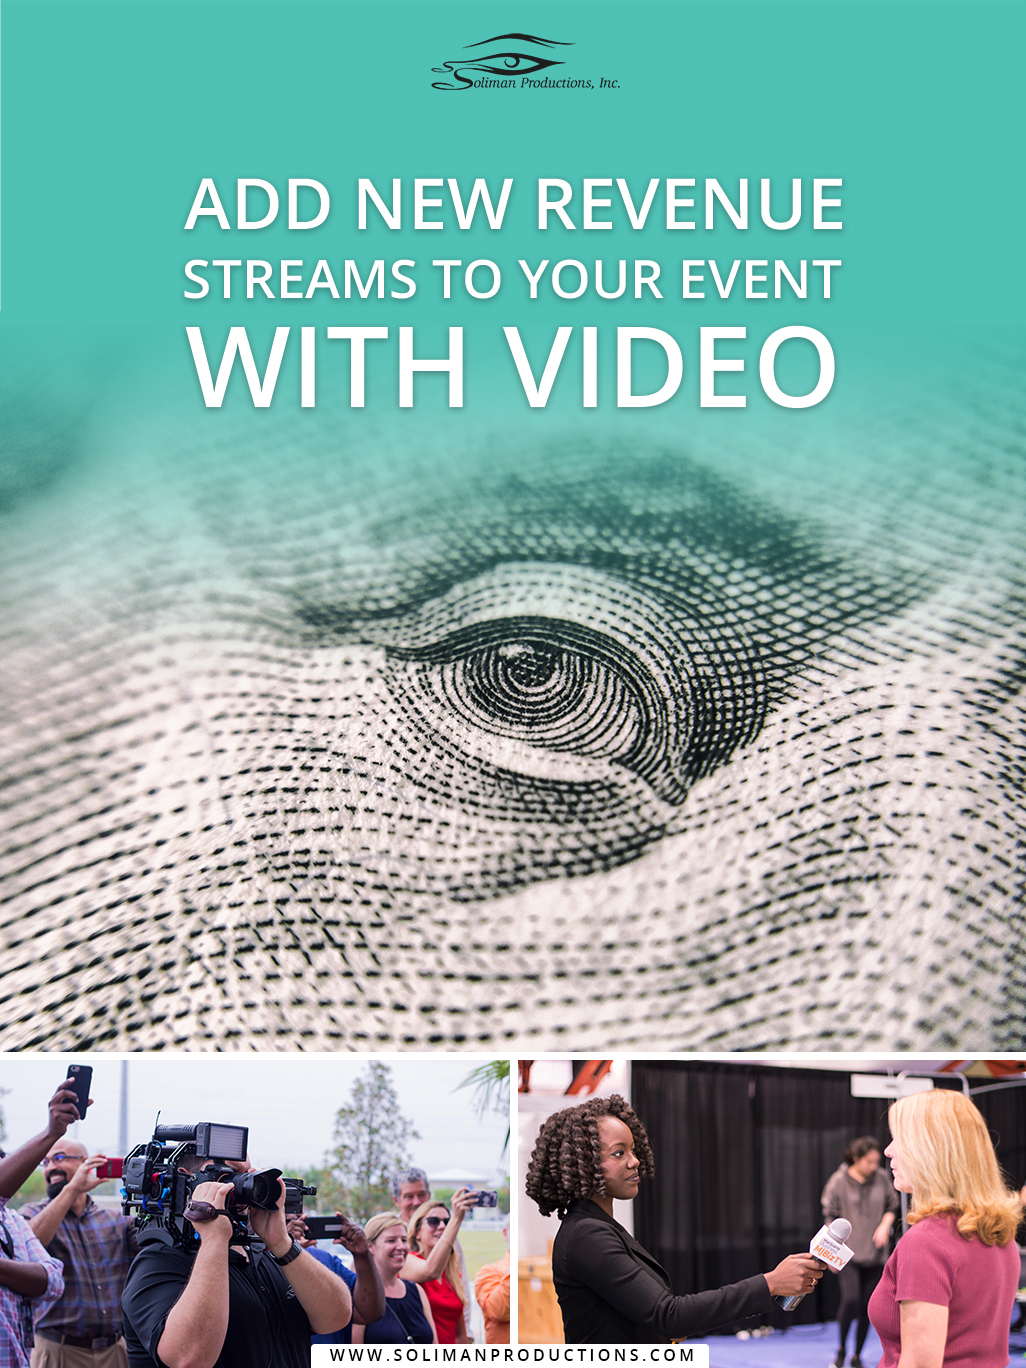 How To Add New Revenue Streams To Your Event With Video Blog Post.jpg